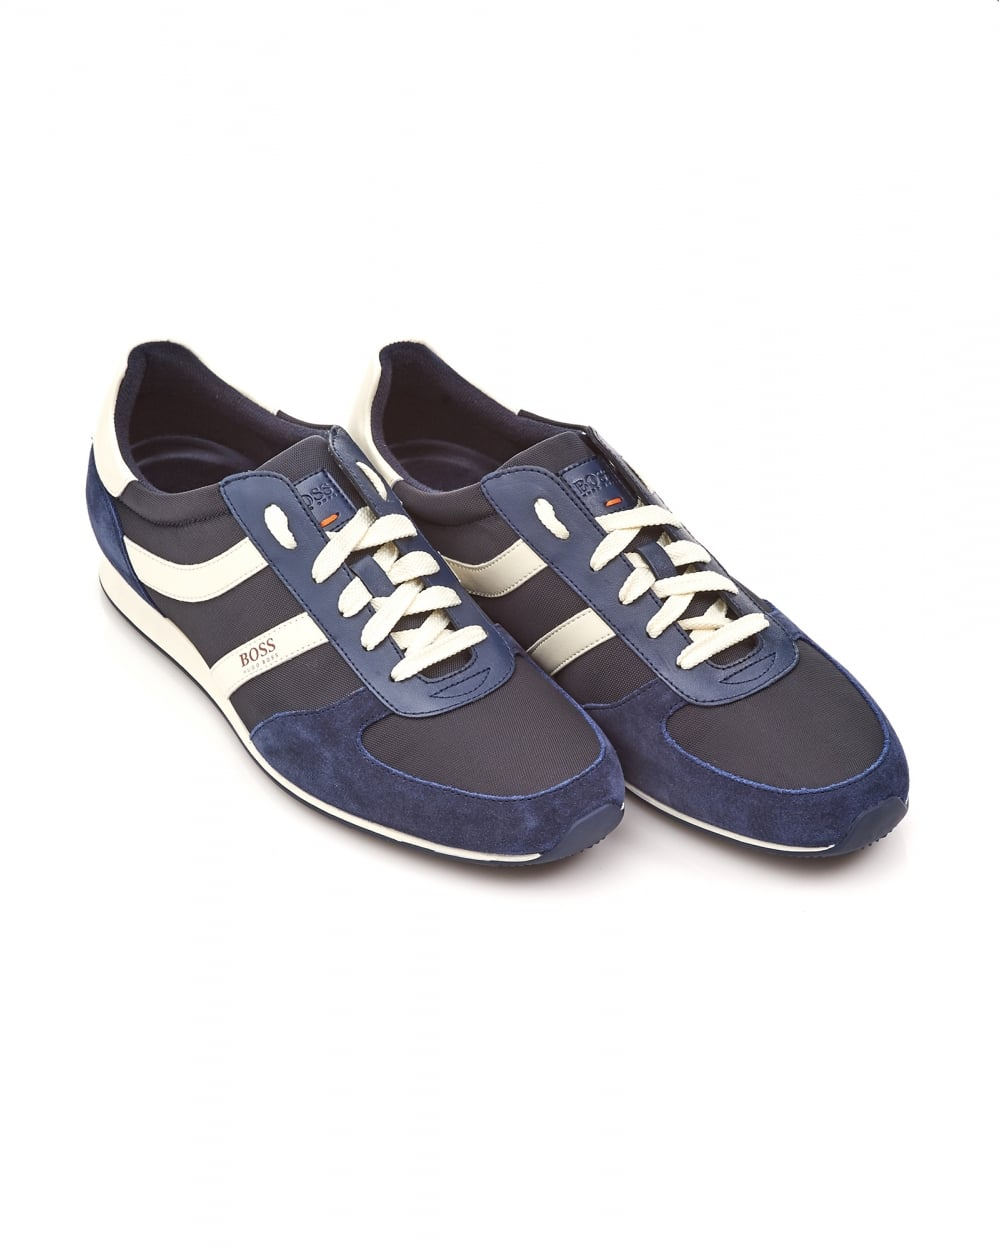 Provide Mens Casual Shoes - Hugo Boss Orland Runn By Boss Orange Navy